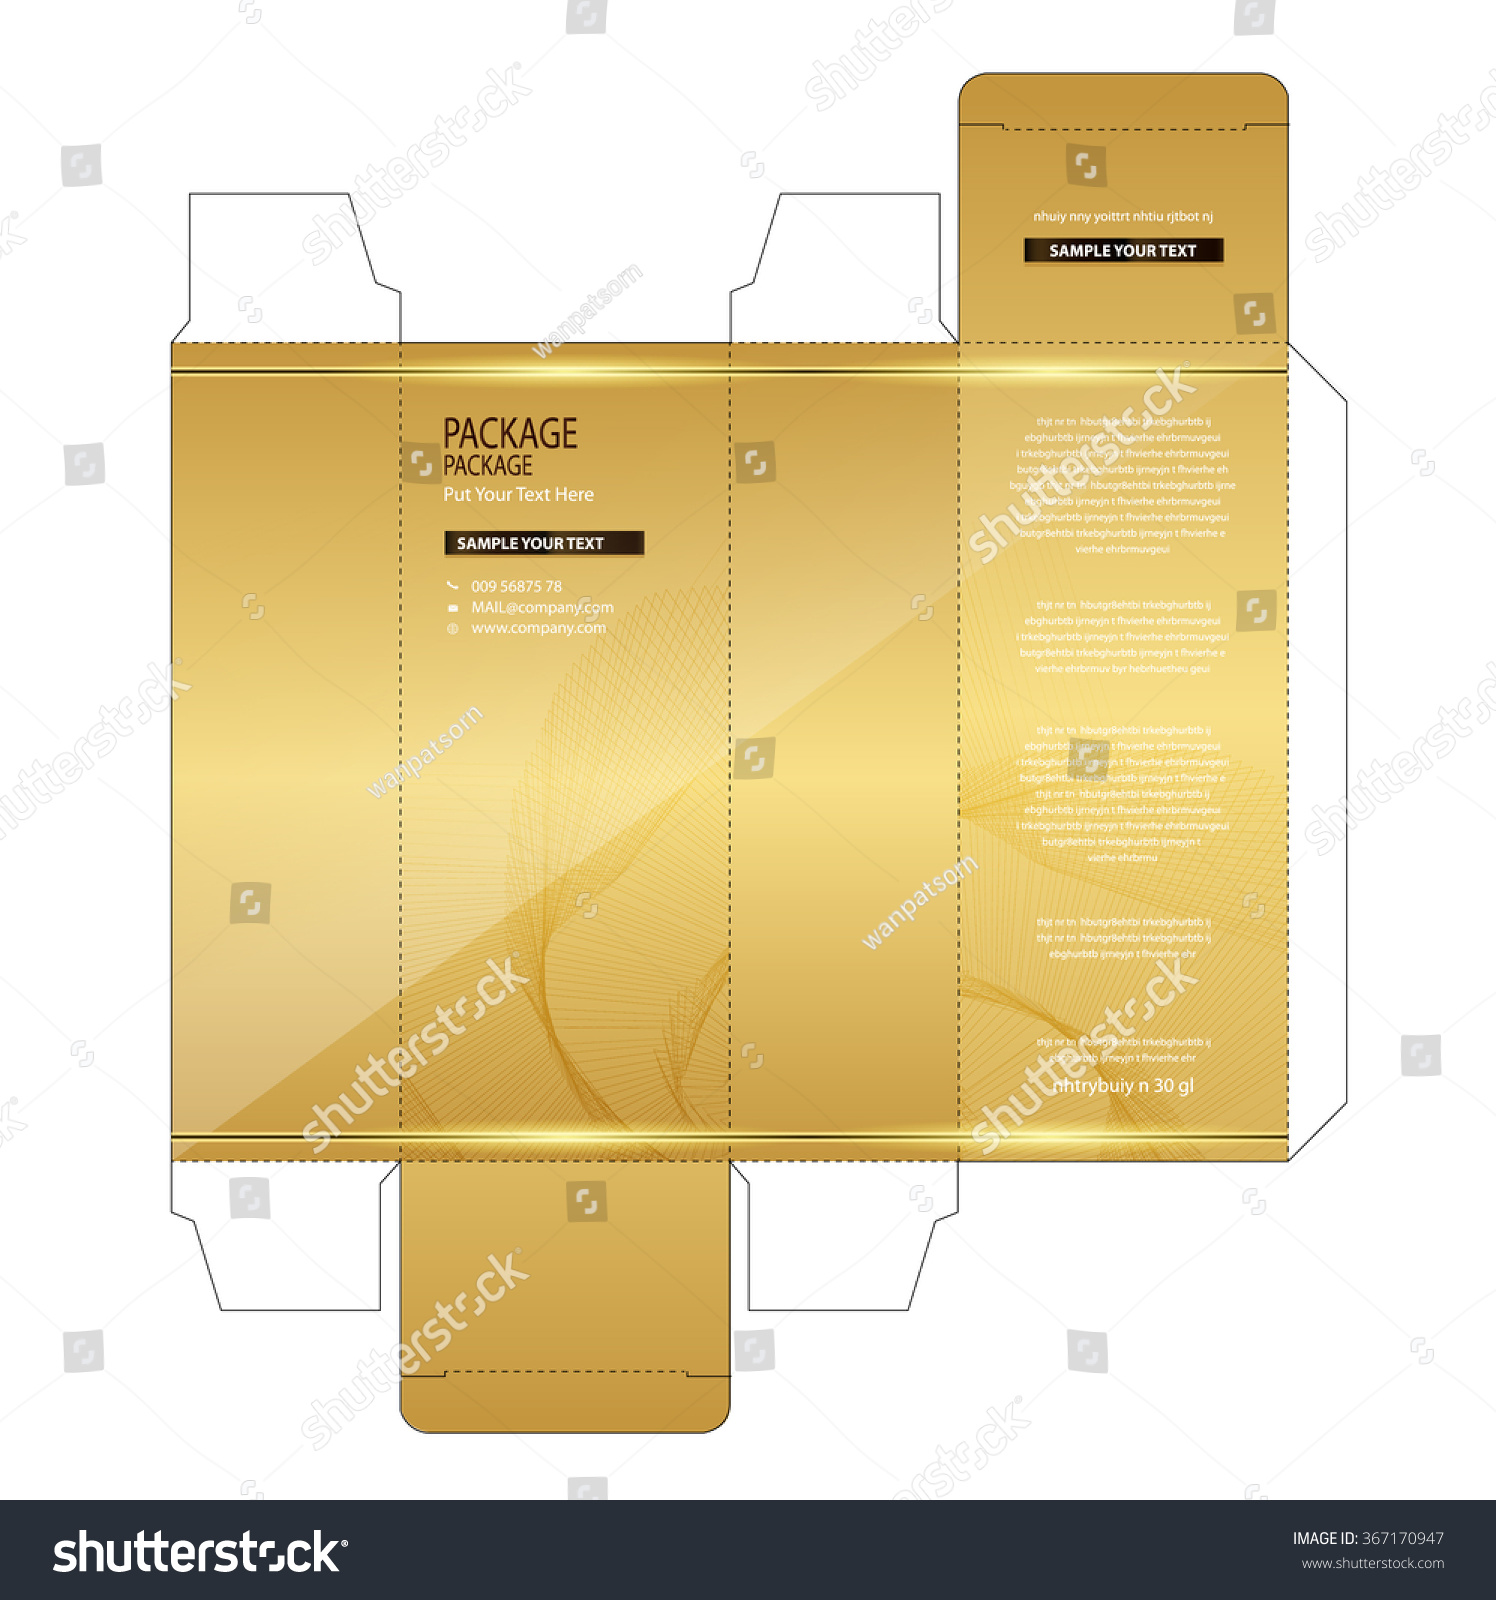 Package Box Design Vector Illustration Stock Vector 367170947 ...